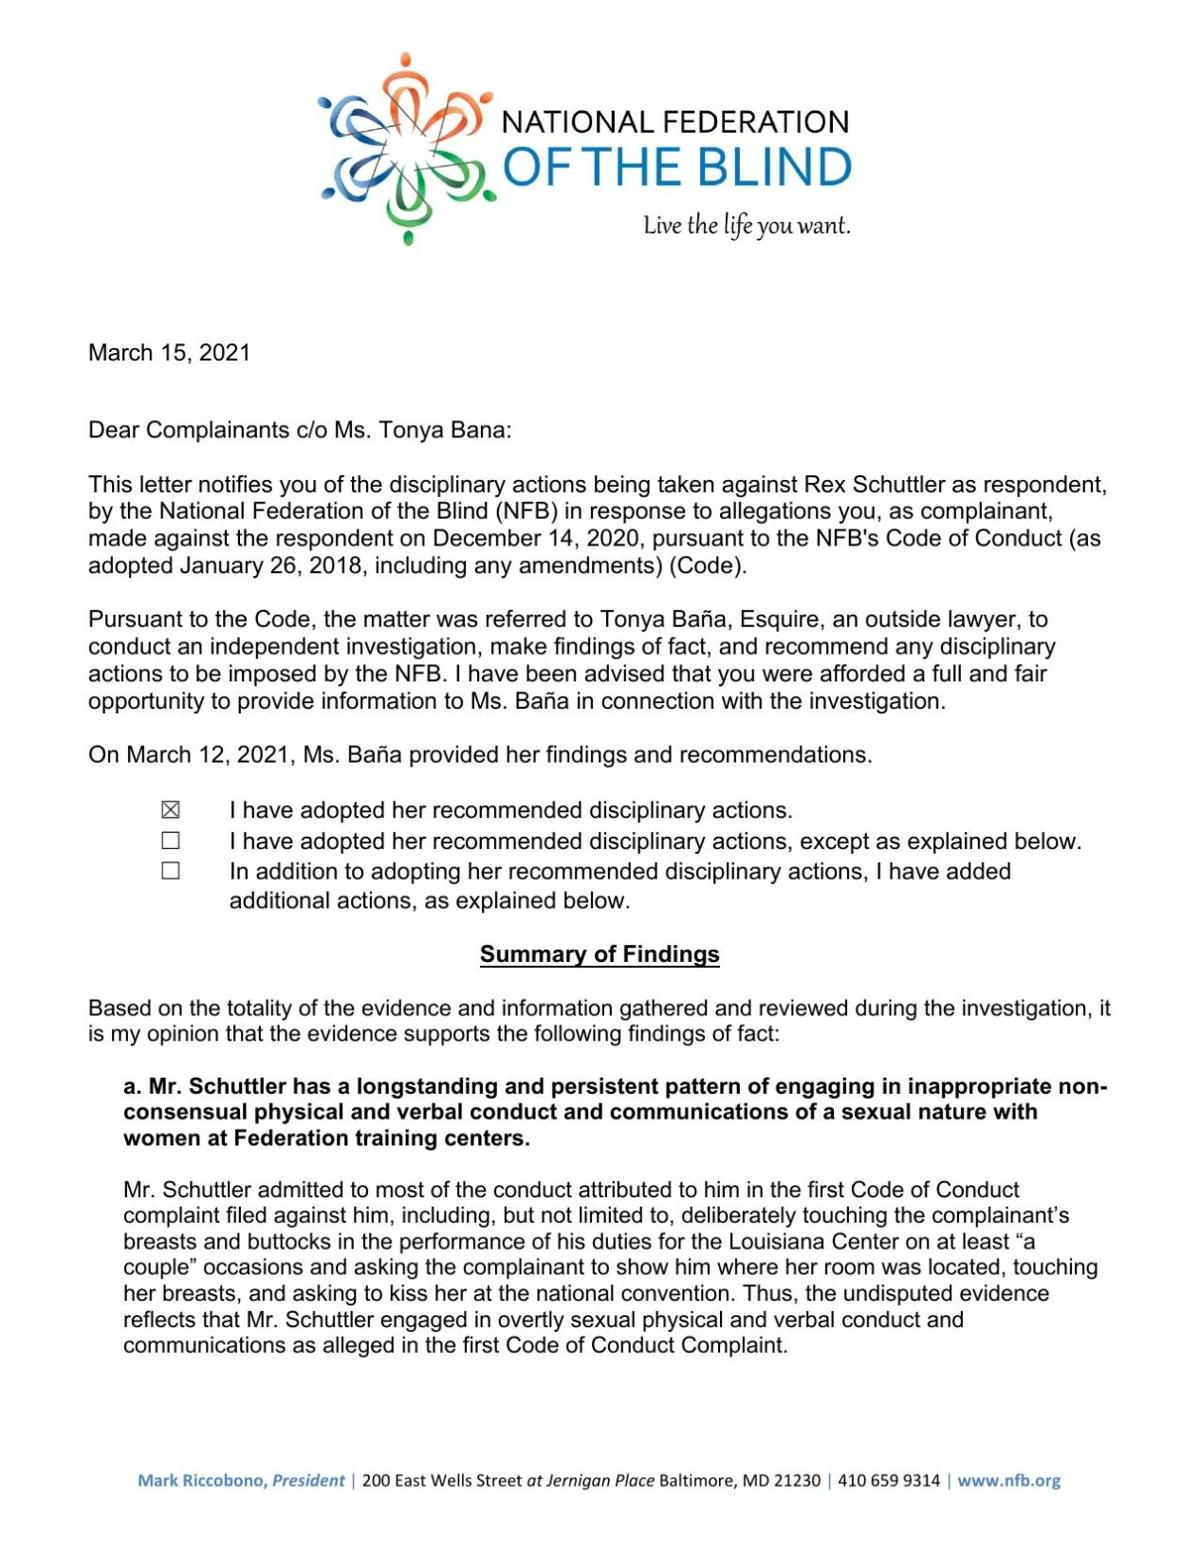 March 2020 National Federation of the Blind letter on sexual assault allegations